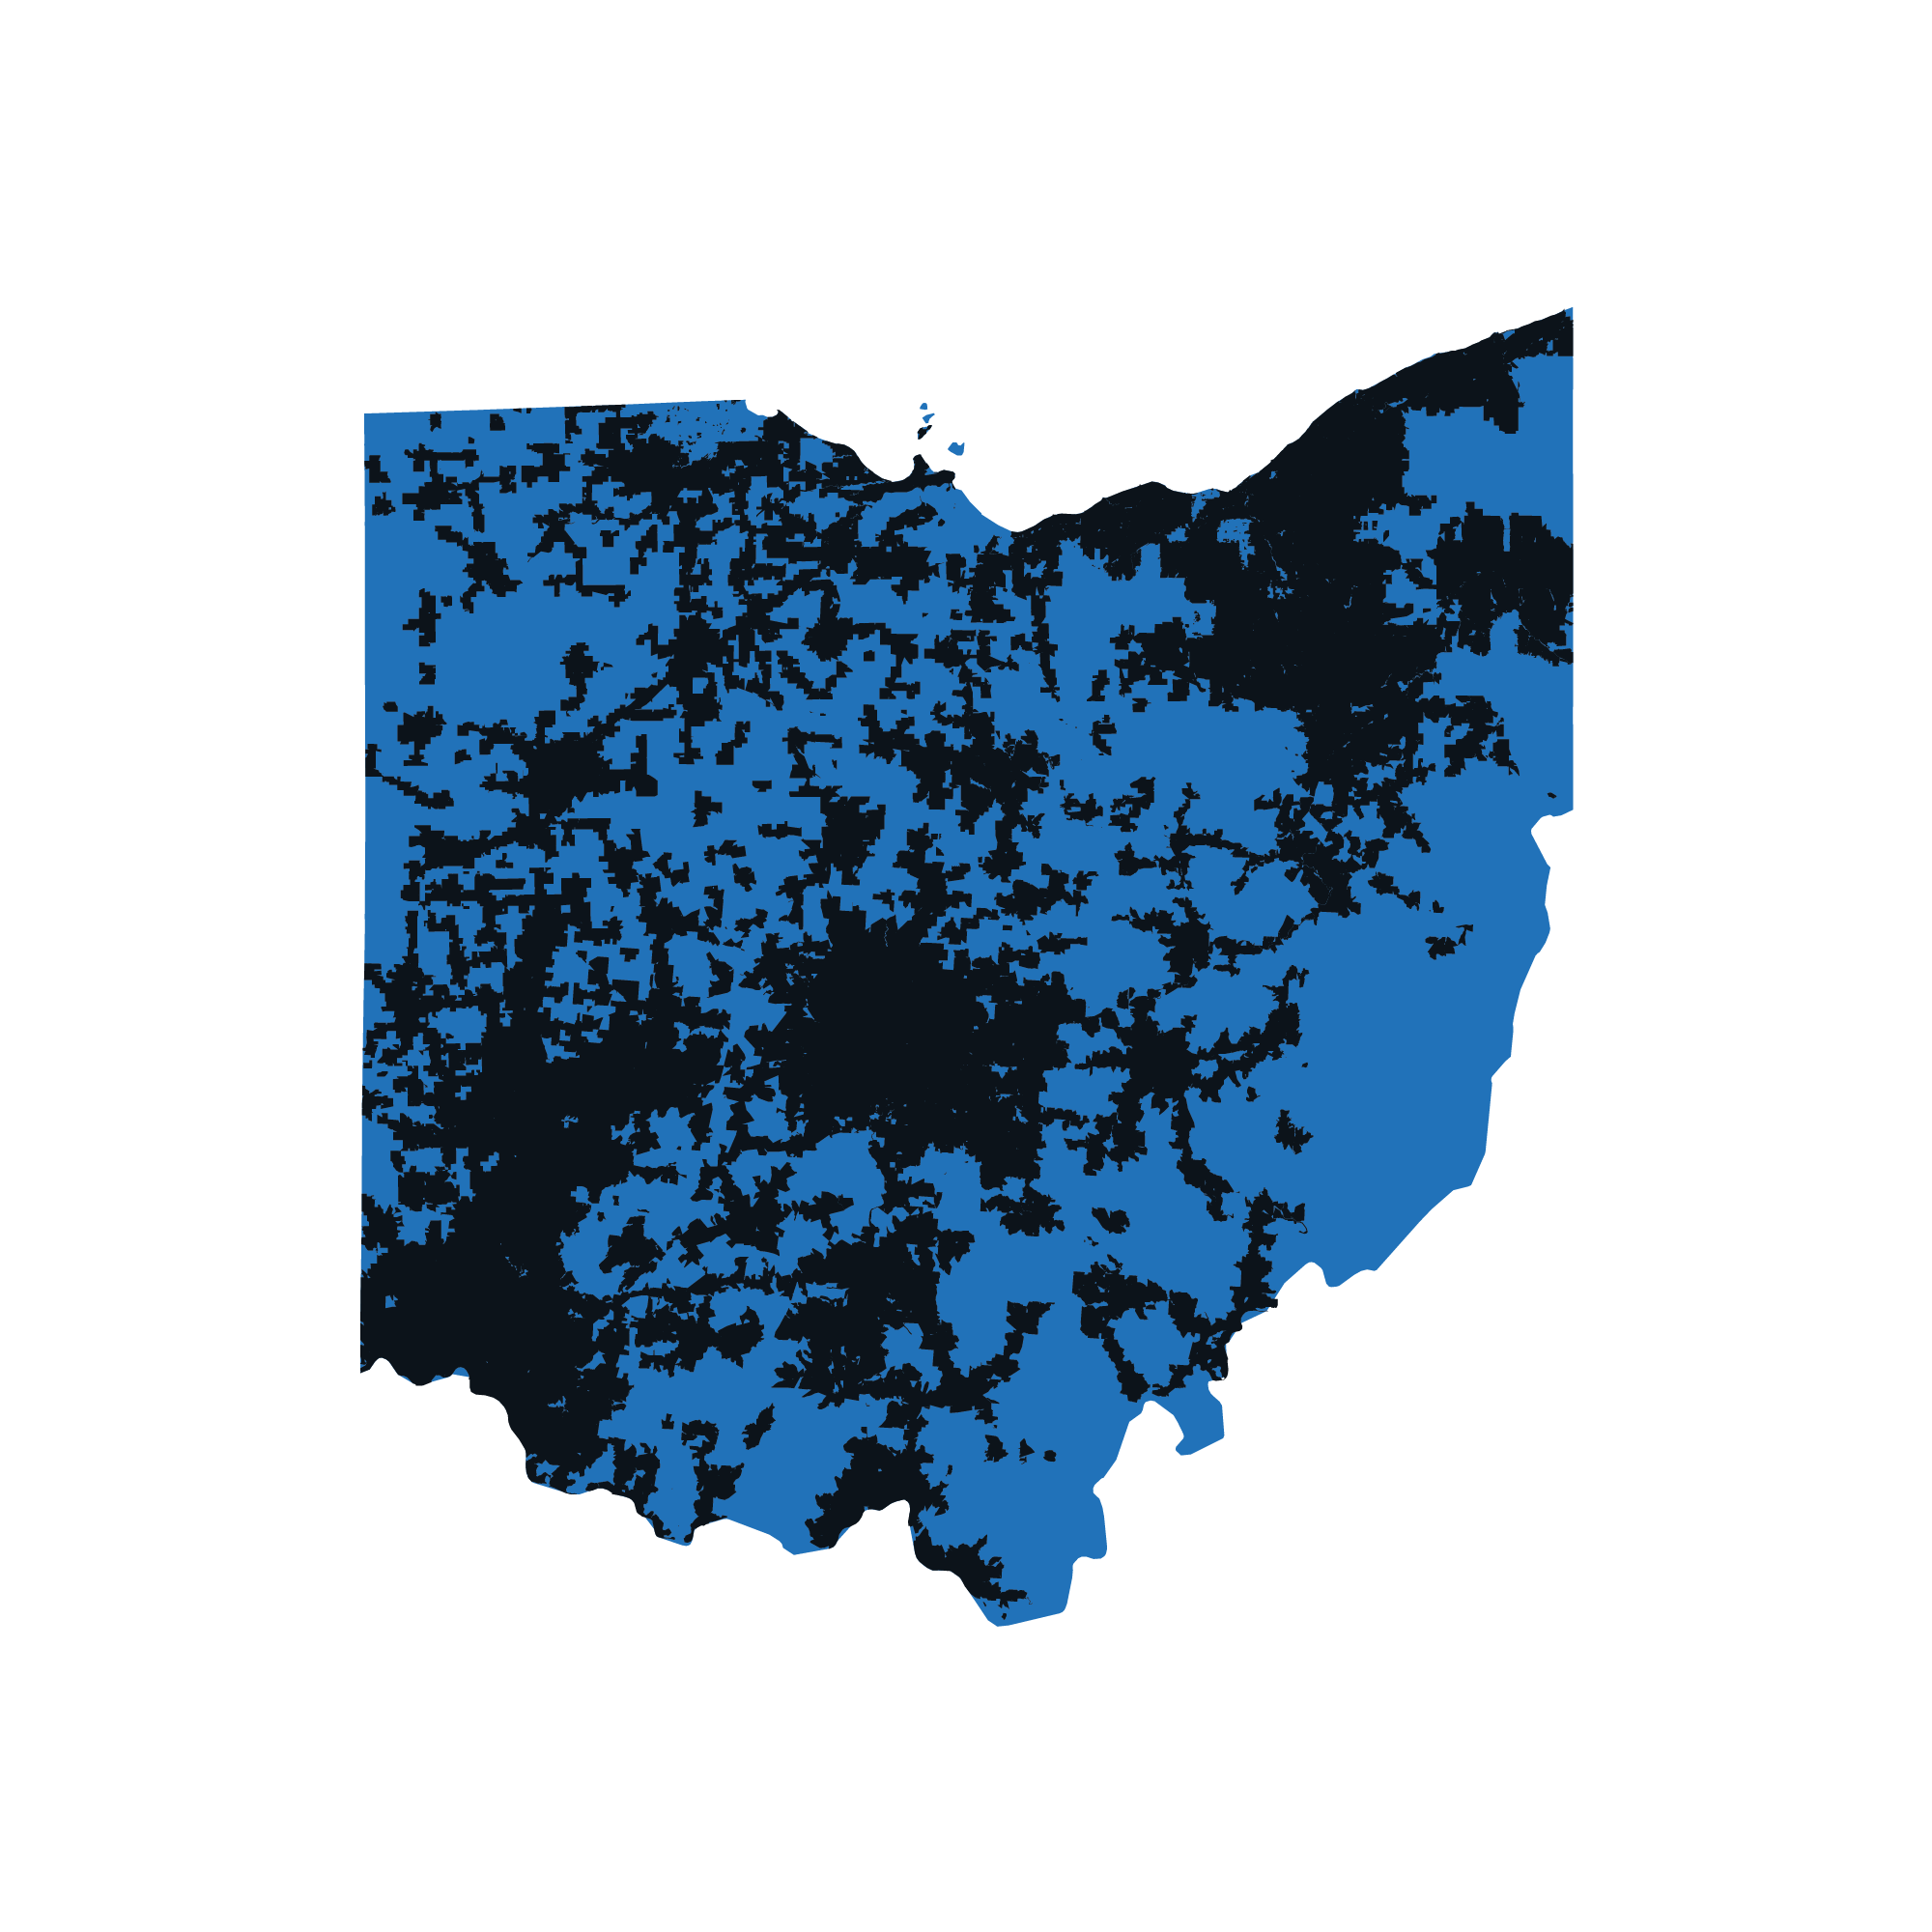 Ohio map data image